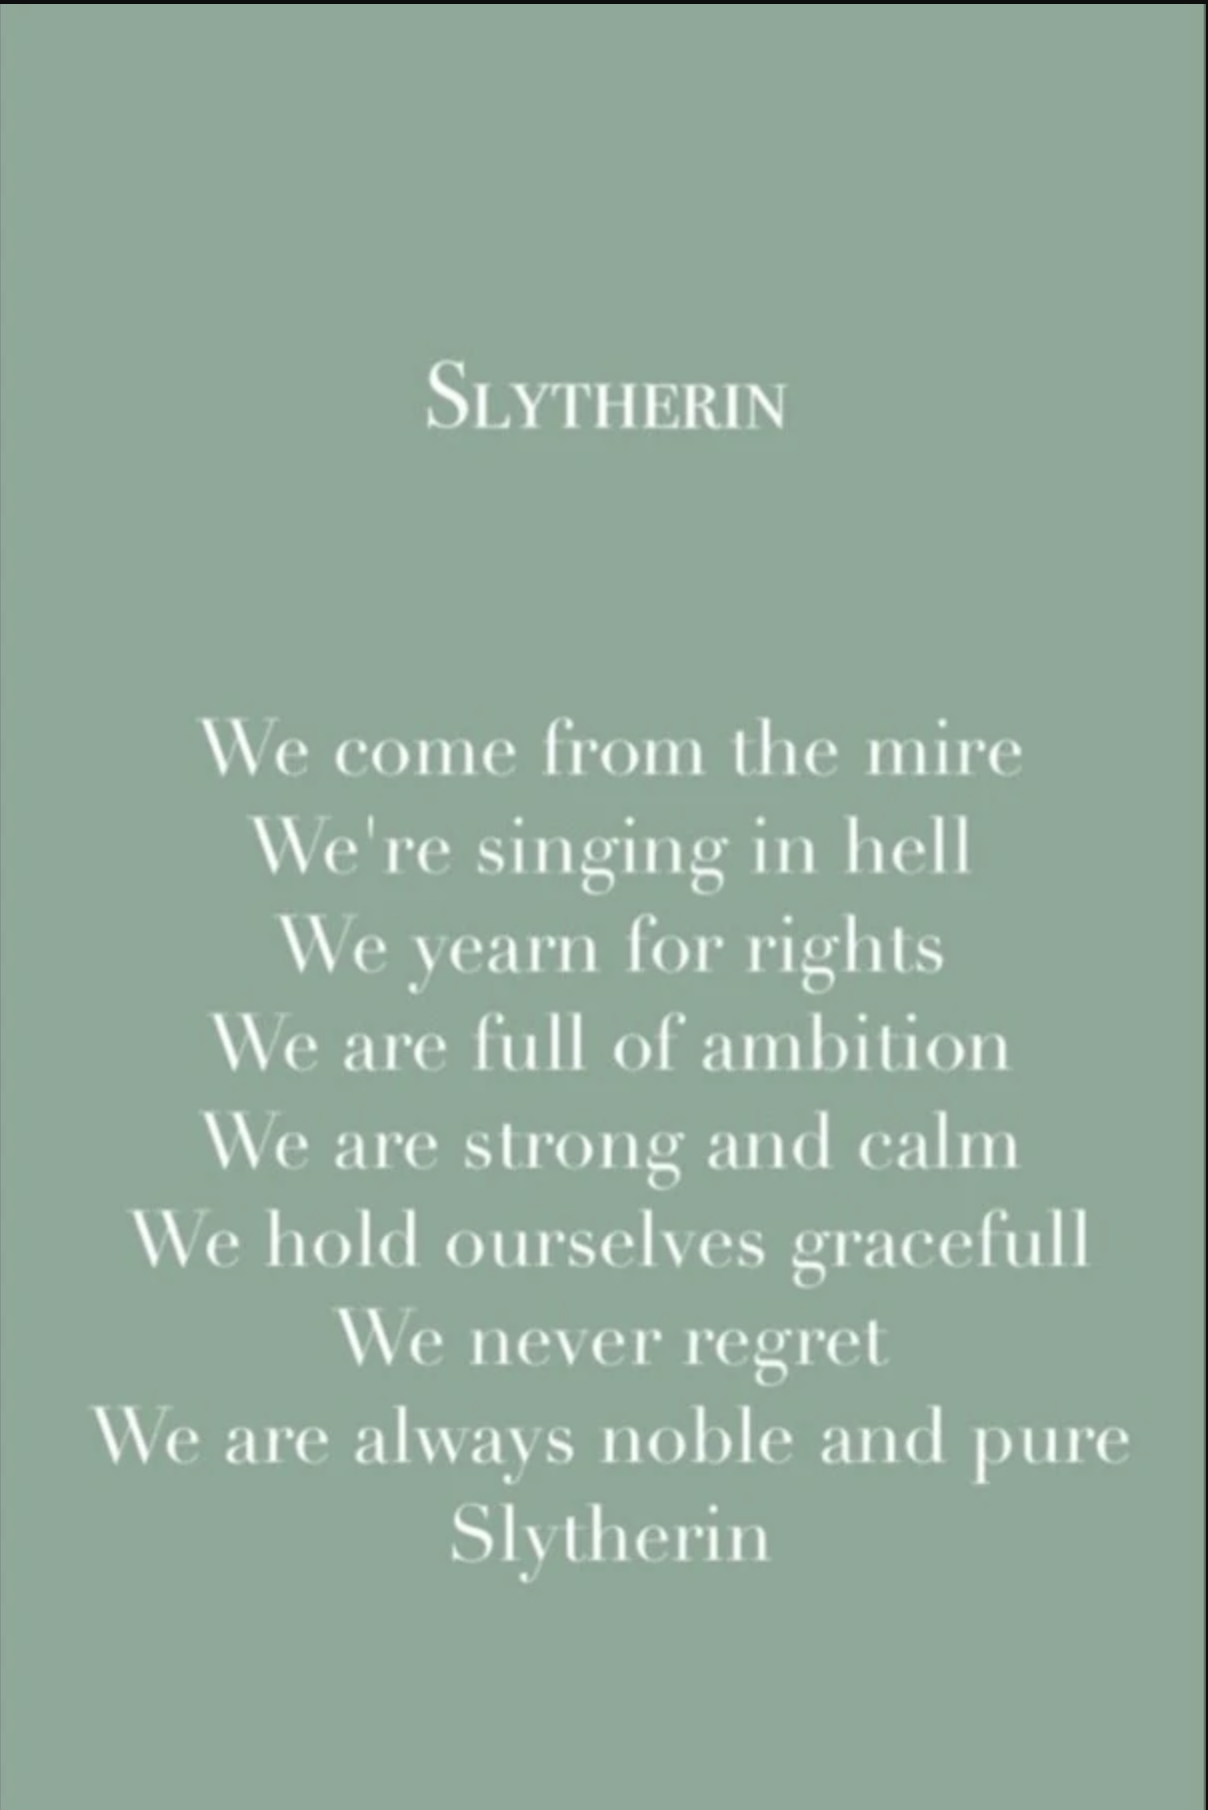 File:Slytherin.png